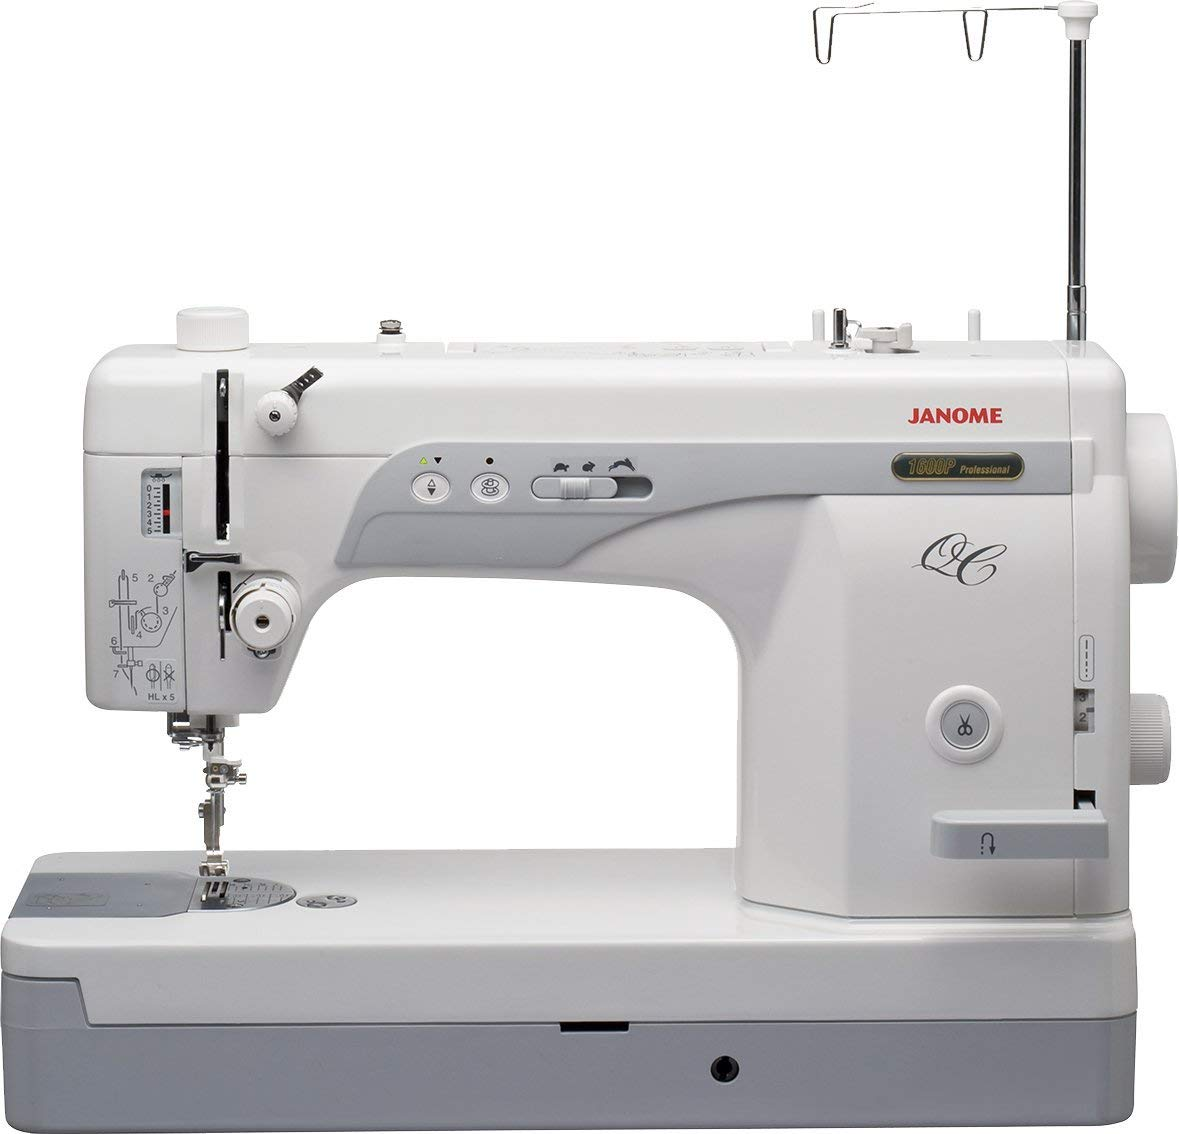 Janome 1600p quilting sewing machine